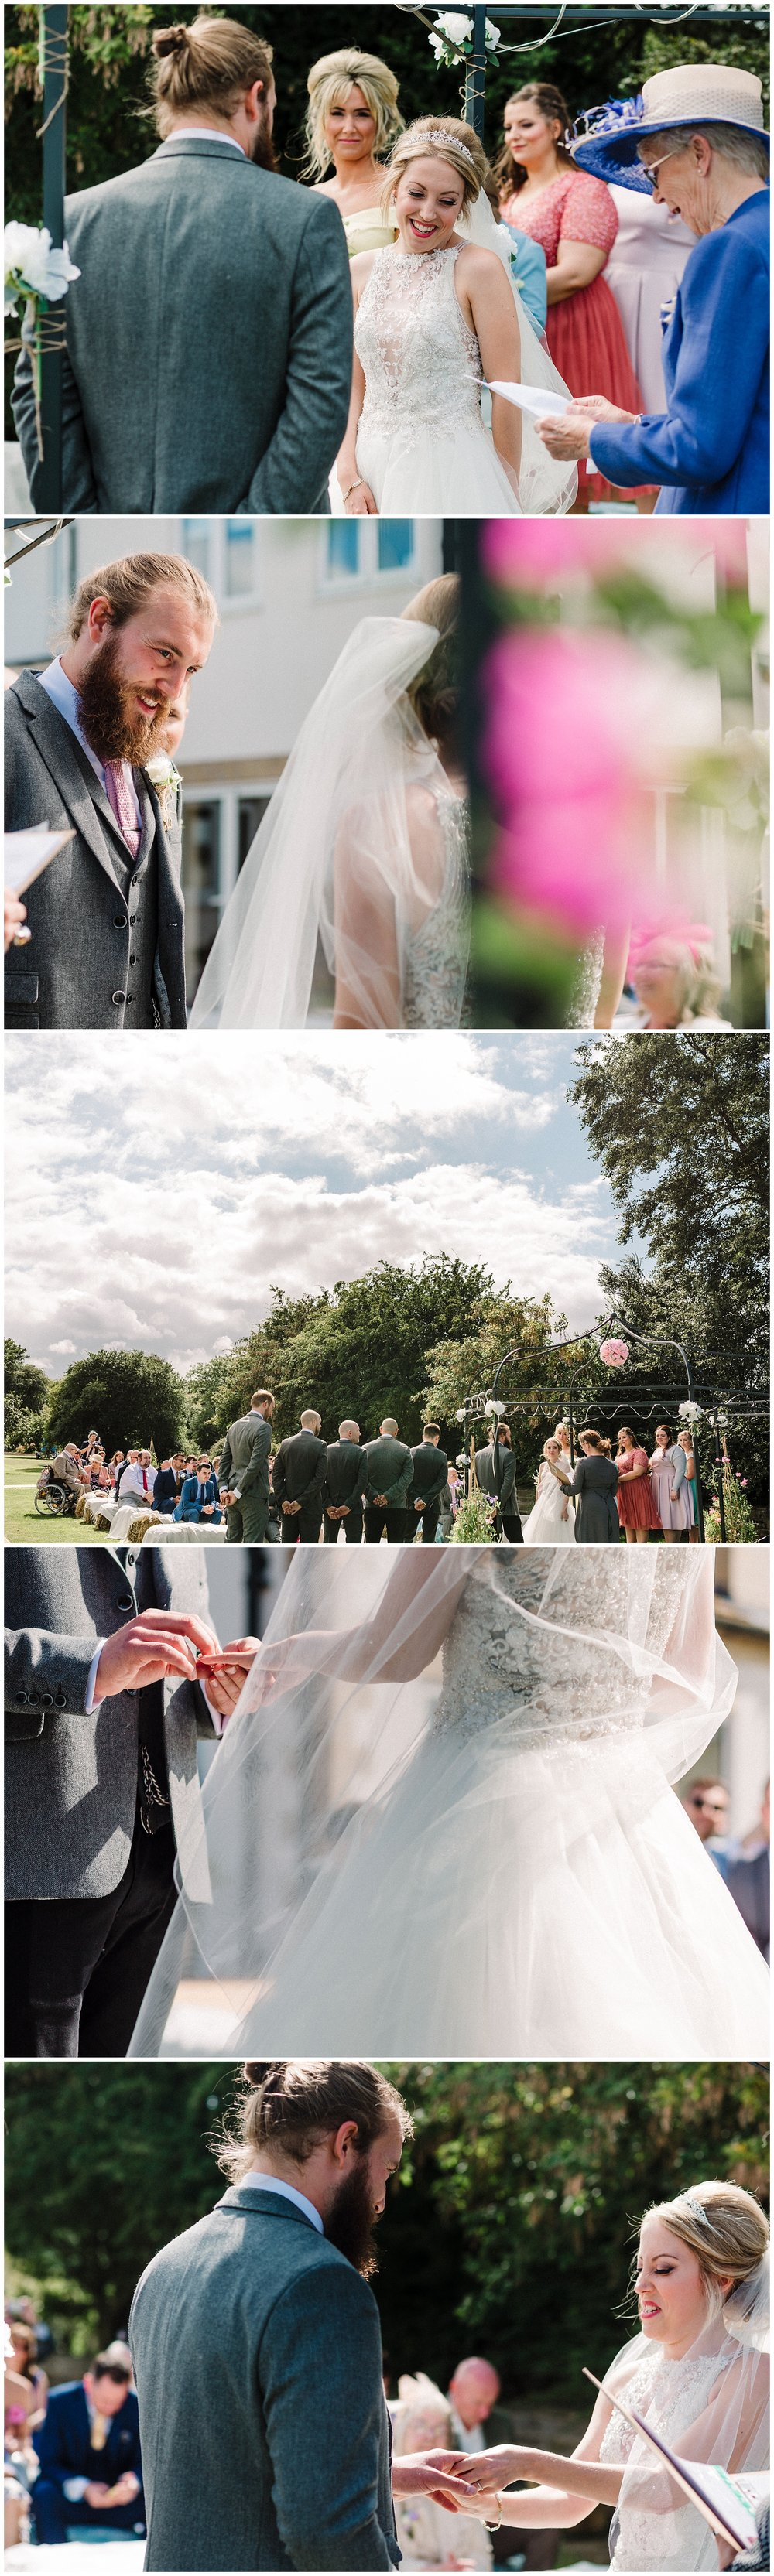 hip to heart wedding photography yorkshire-3.jpg